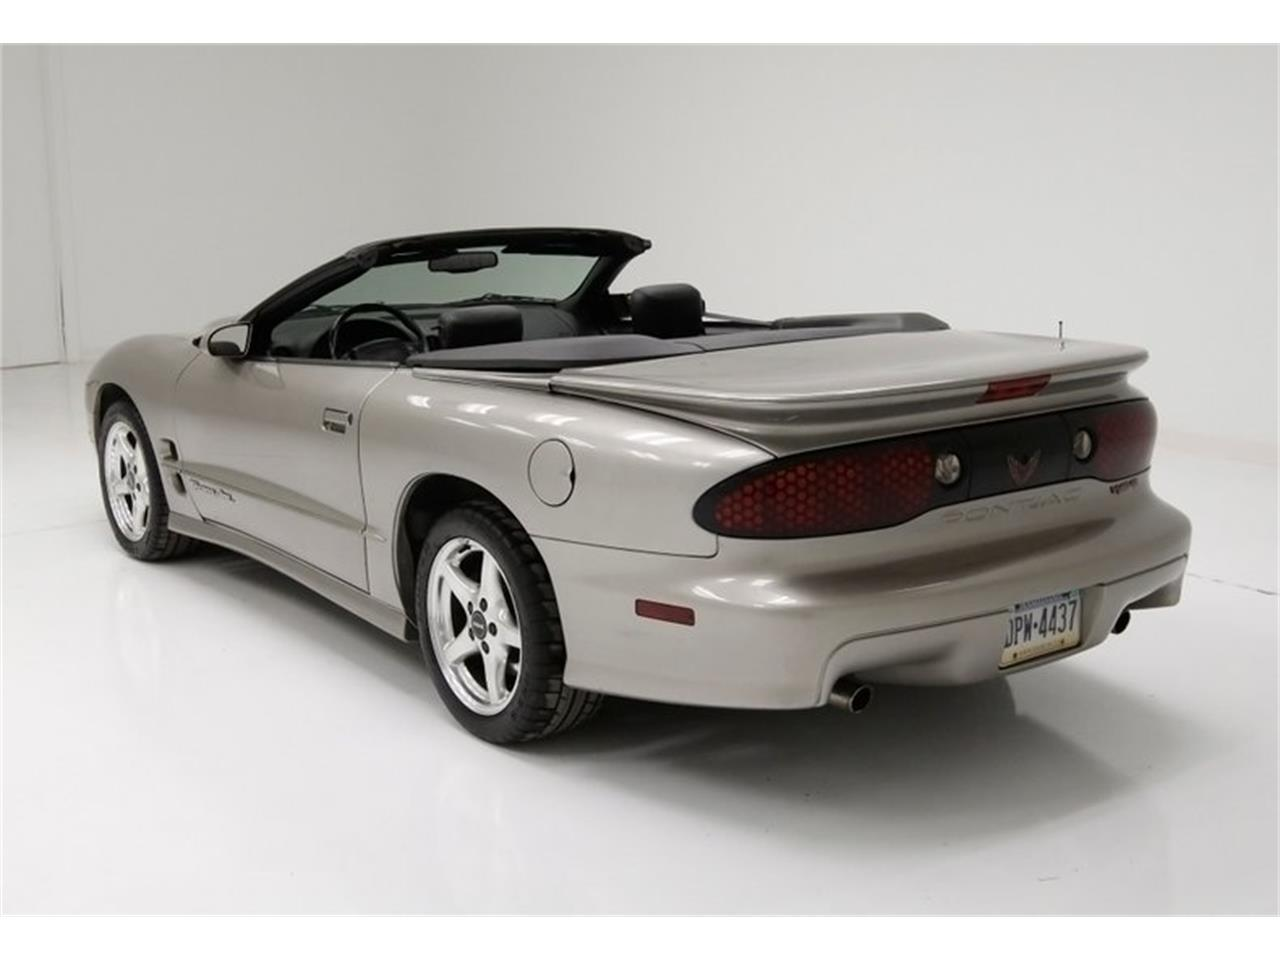 2000 Pontiac Firebird Trans Am (CC-1179286) for sale in Morgantown, Pennsylvania